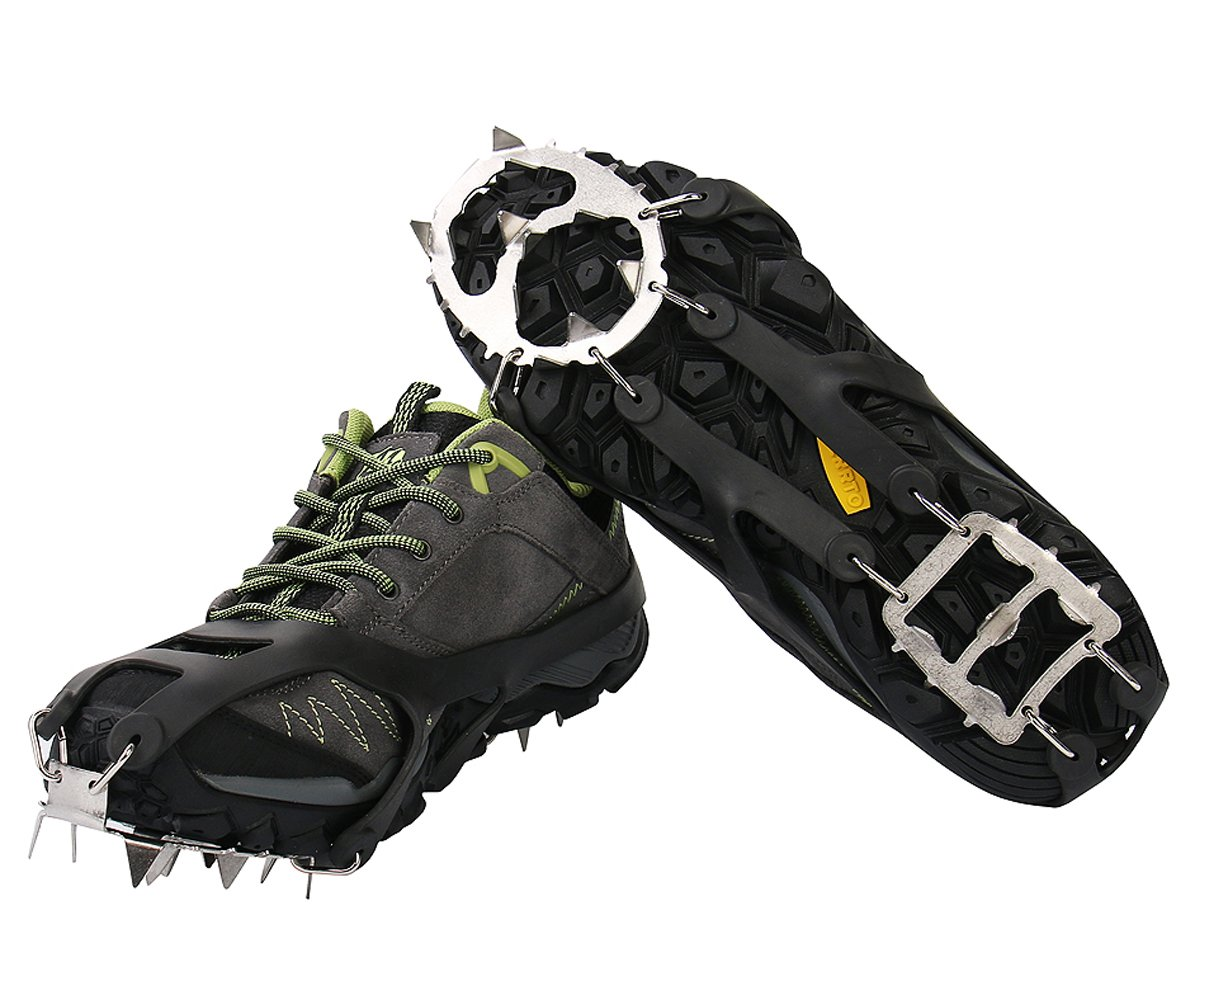 DaDaDa 25 Spikes Crampons Ice Cleats Traction Snow Grips for Boots Shoes,Anti-Slip Stainless Steel Spikes,Microspikes for Hiking Fishing Walking Climbing Jogging Mountaineering.